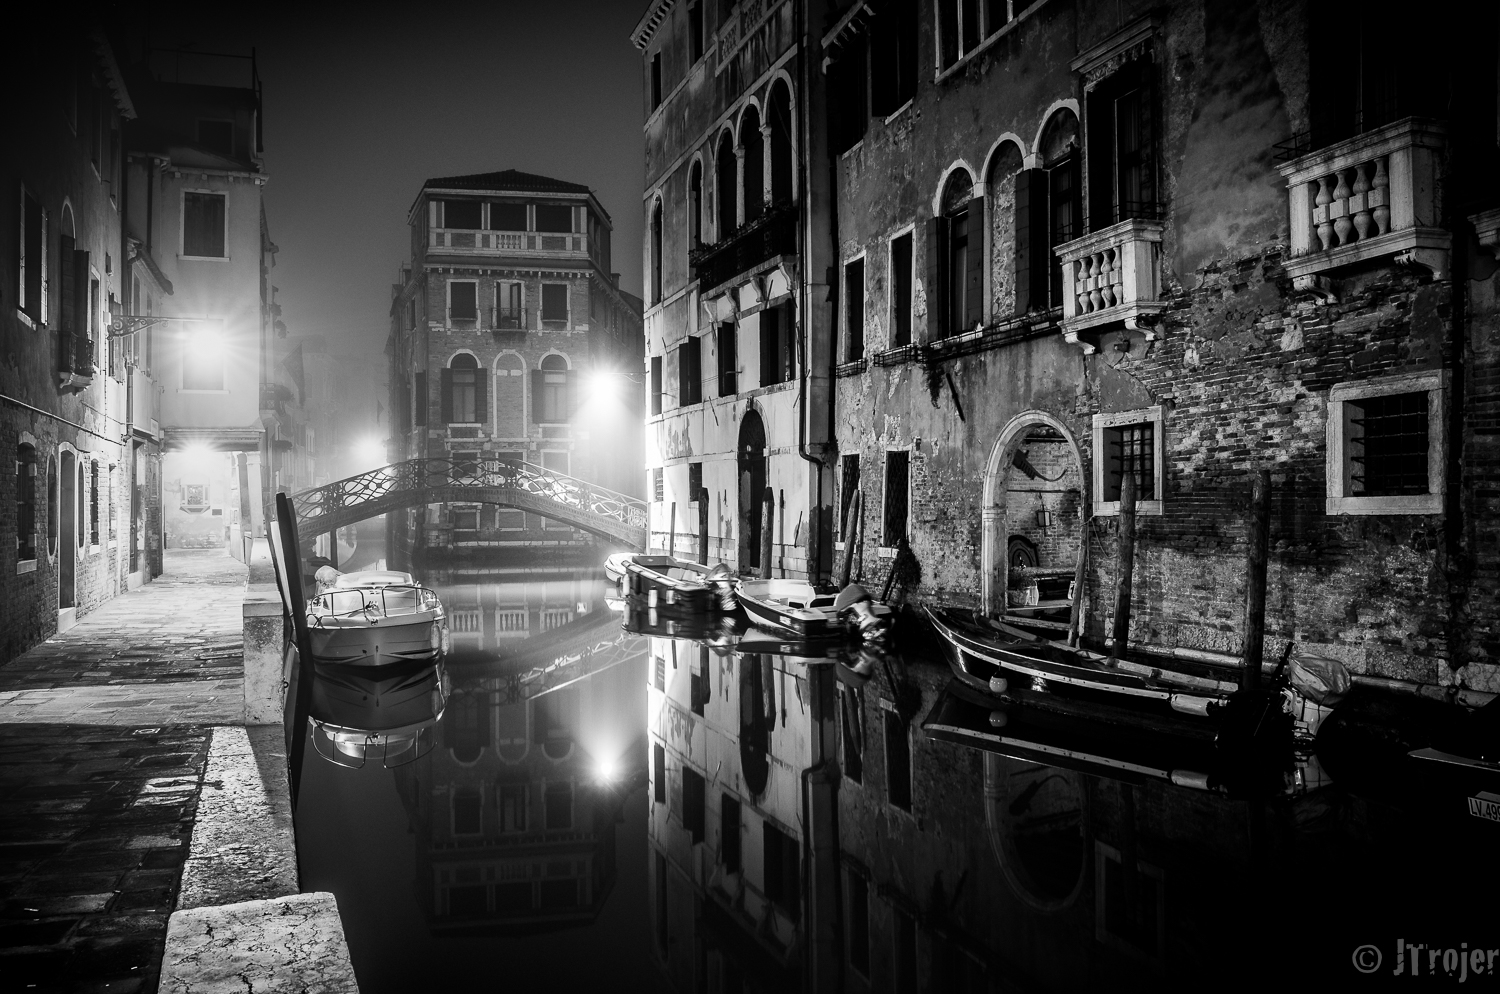 Getting up at 5:00 in the morning gets you to roam around Venice and have the streets all for yourself.